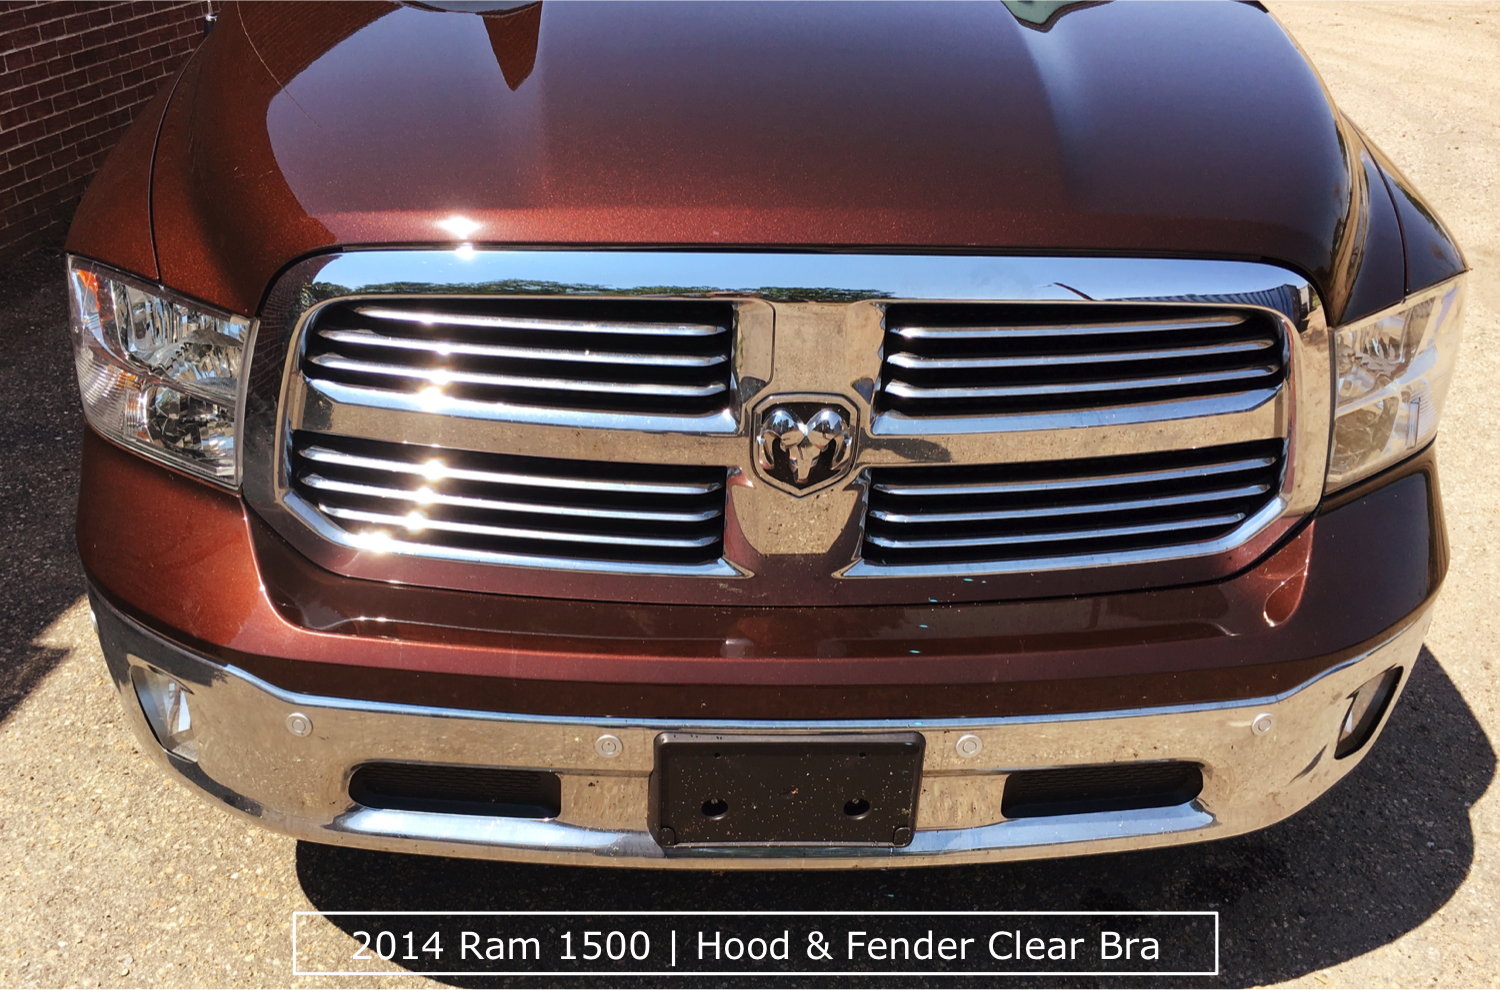 Ram Truck With Denver Clear Bra